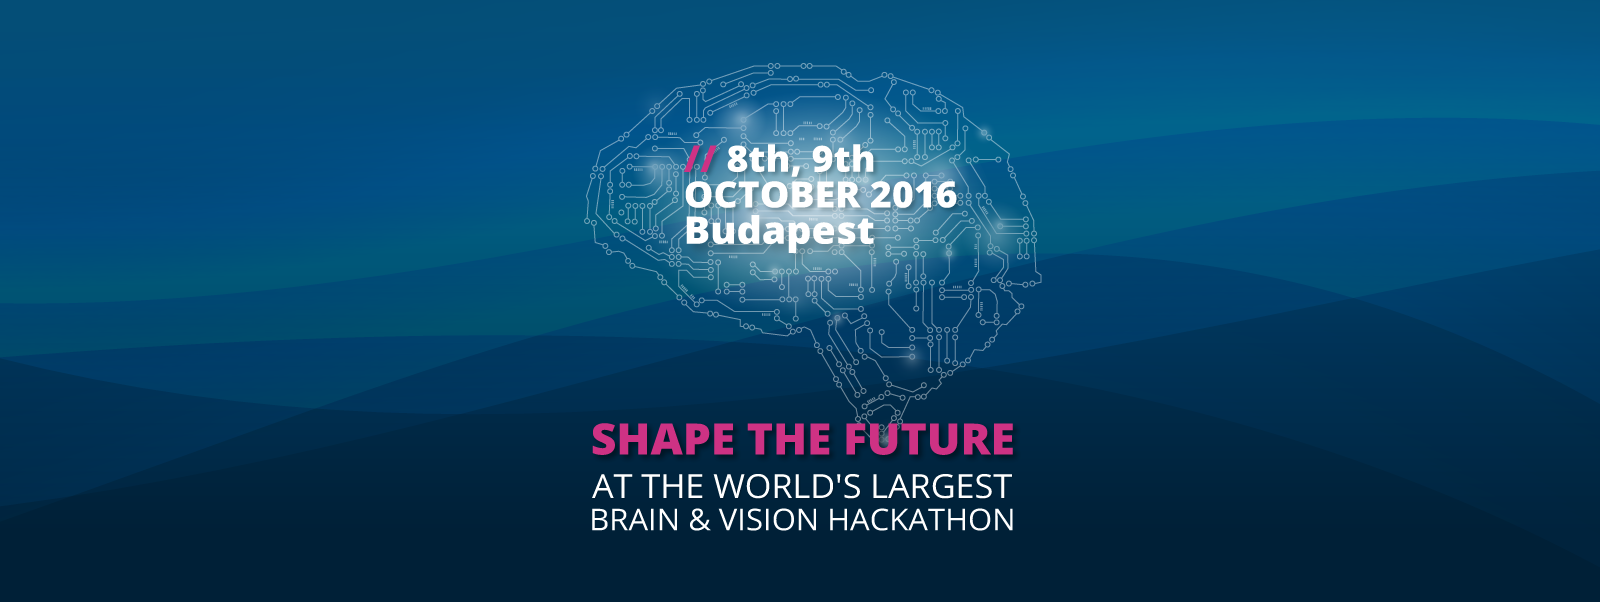 World's biggest brain and vision hackathon happening in Budapest on 8th & 9th October. Apply now.